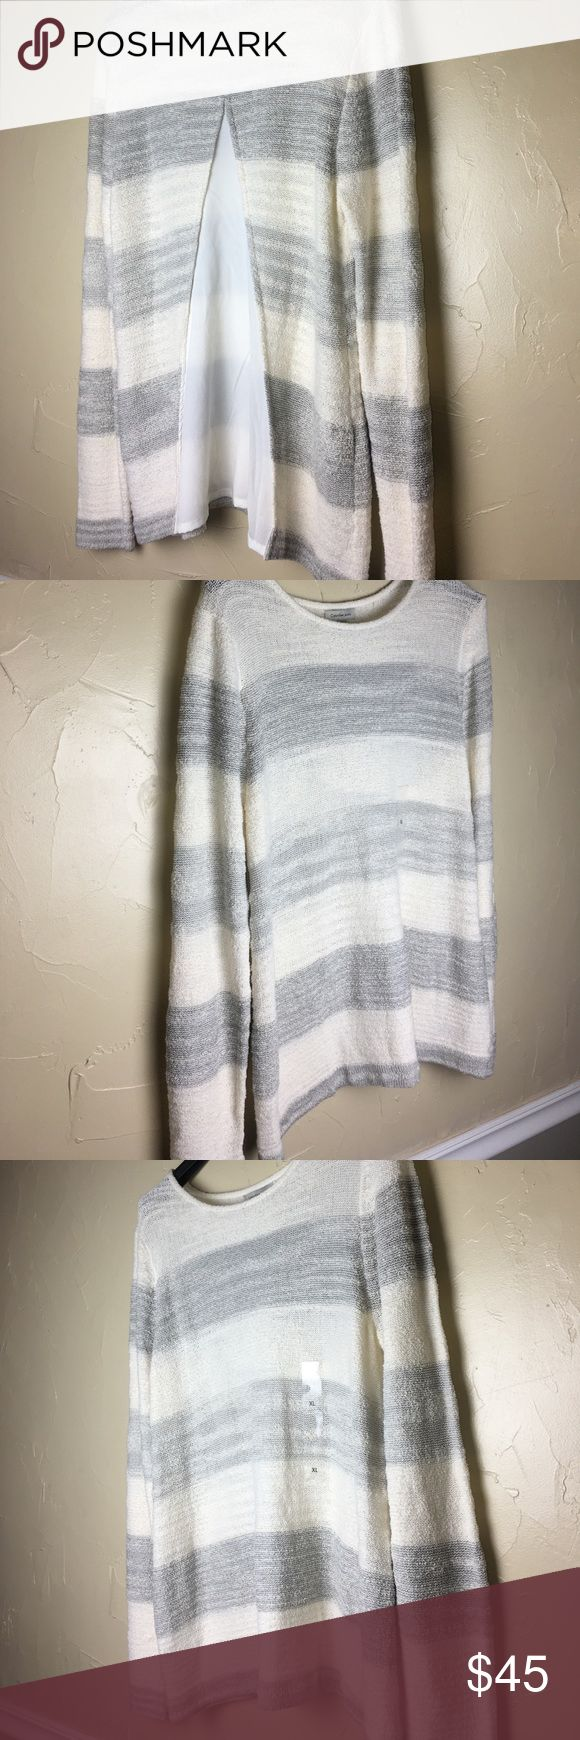 ❌SALE❌Calvin Klein Jeans XL sweater Beautiful Calvin Klein Jeans sweater blouse ; thick as a user but can be used as a blouse. Super soft with beautiful detail on the Back see as shown in the pictures. Calvin Klein Jeans Tops Blouses